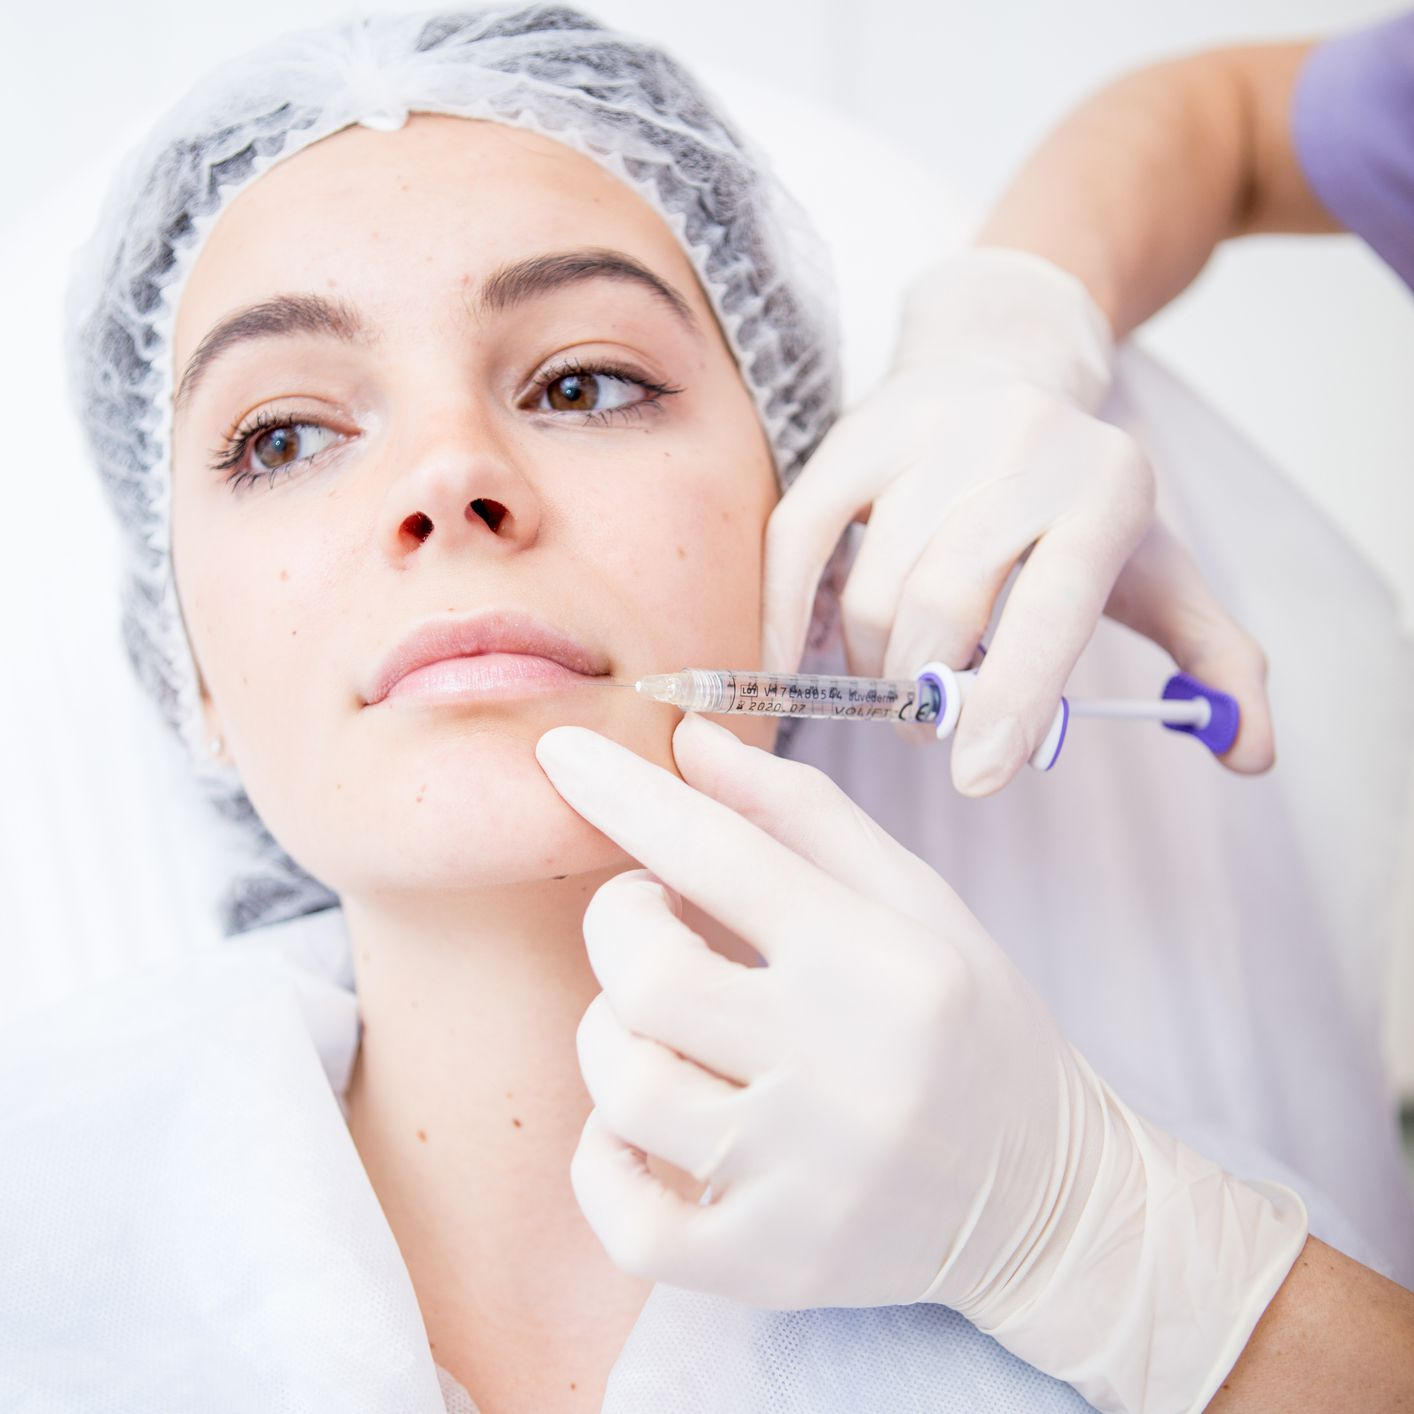 young woman getting fillers near mouth